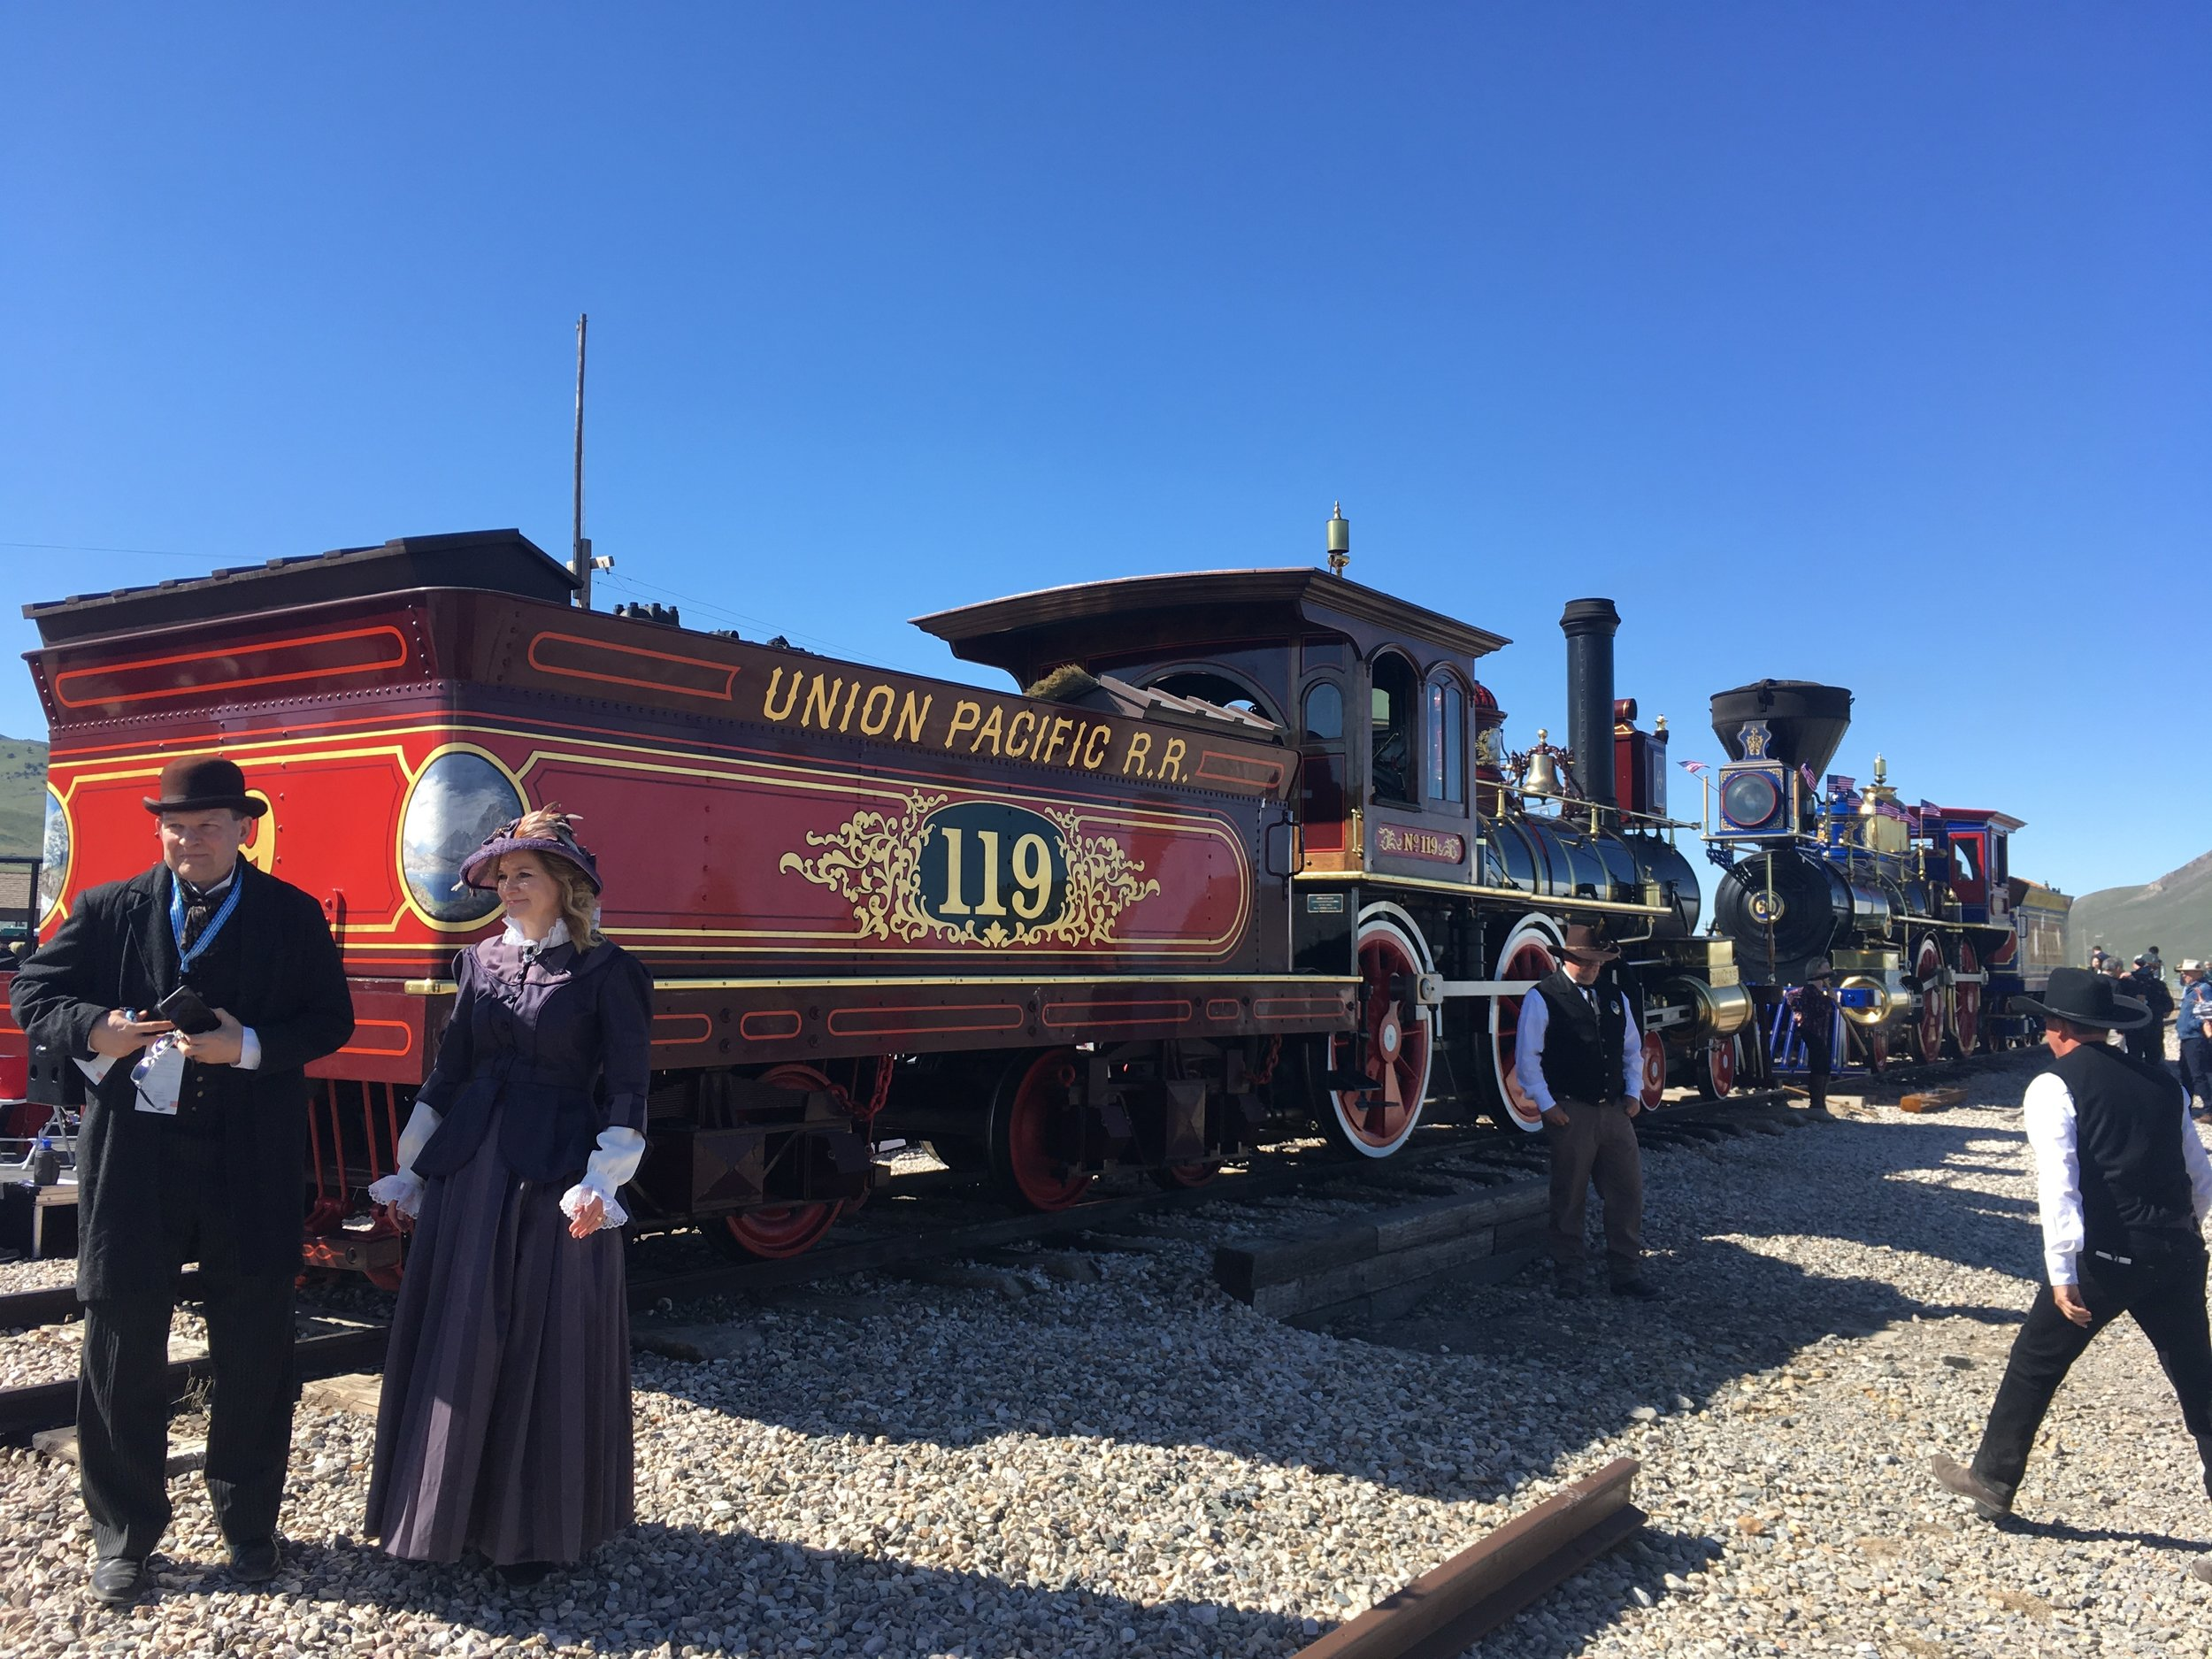 Replicas of the No. 119 (left) and the Jupiter meet during the 150th anniversary festivities for the Golden Spike, at Promontory, Utah, on Friday, May 10, 2019. (Photo by Sean P. Means, courtesy The Salt Lake Tribune.)